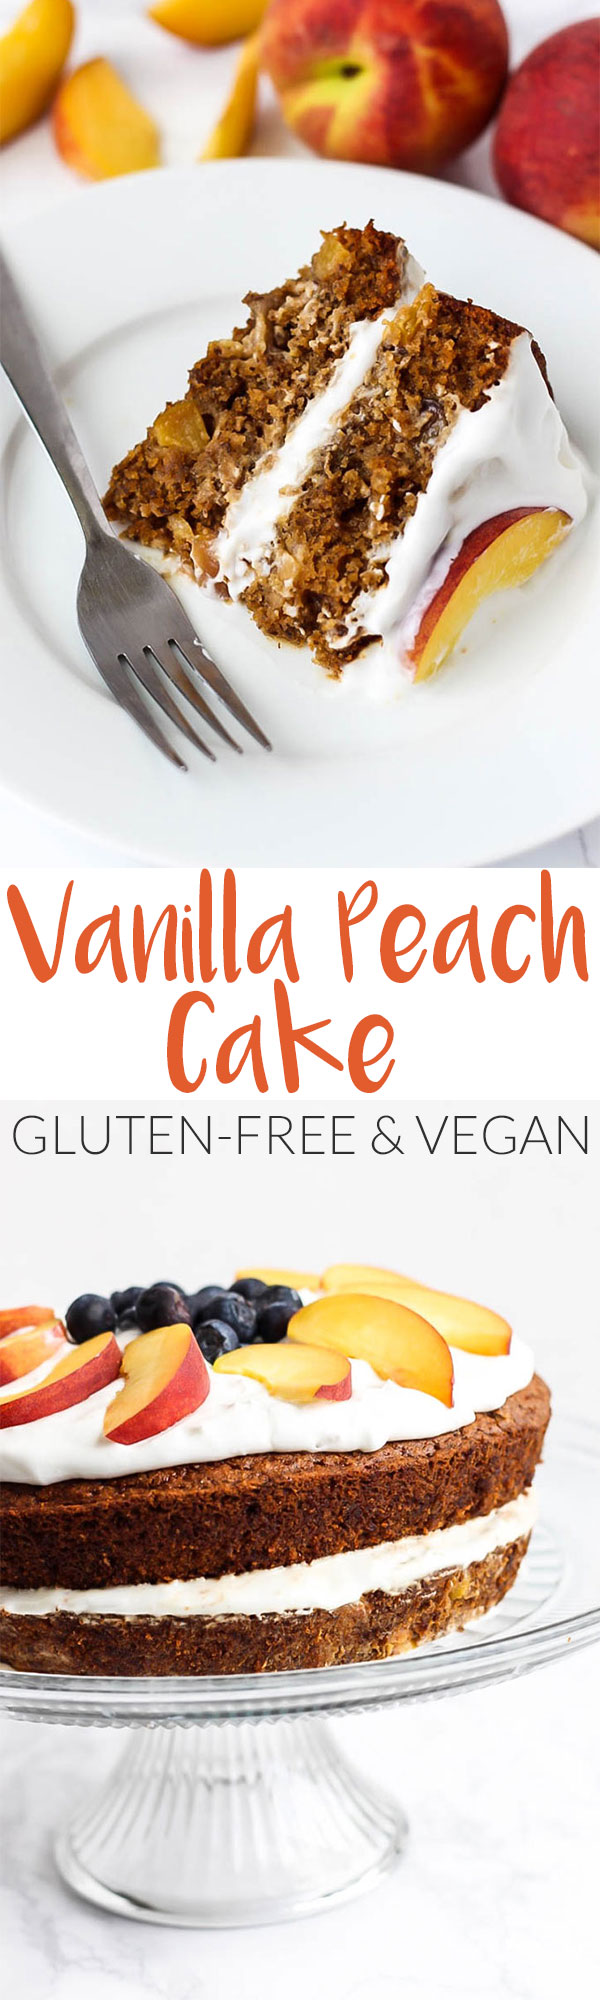 Full of juicy peaches, this Vegan & Gluten-Free Vanilla Peach Cake is a great healthier dessert made with grain-free ingredients you can feel good about.